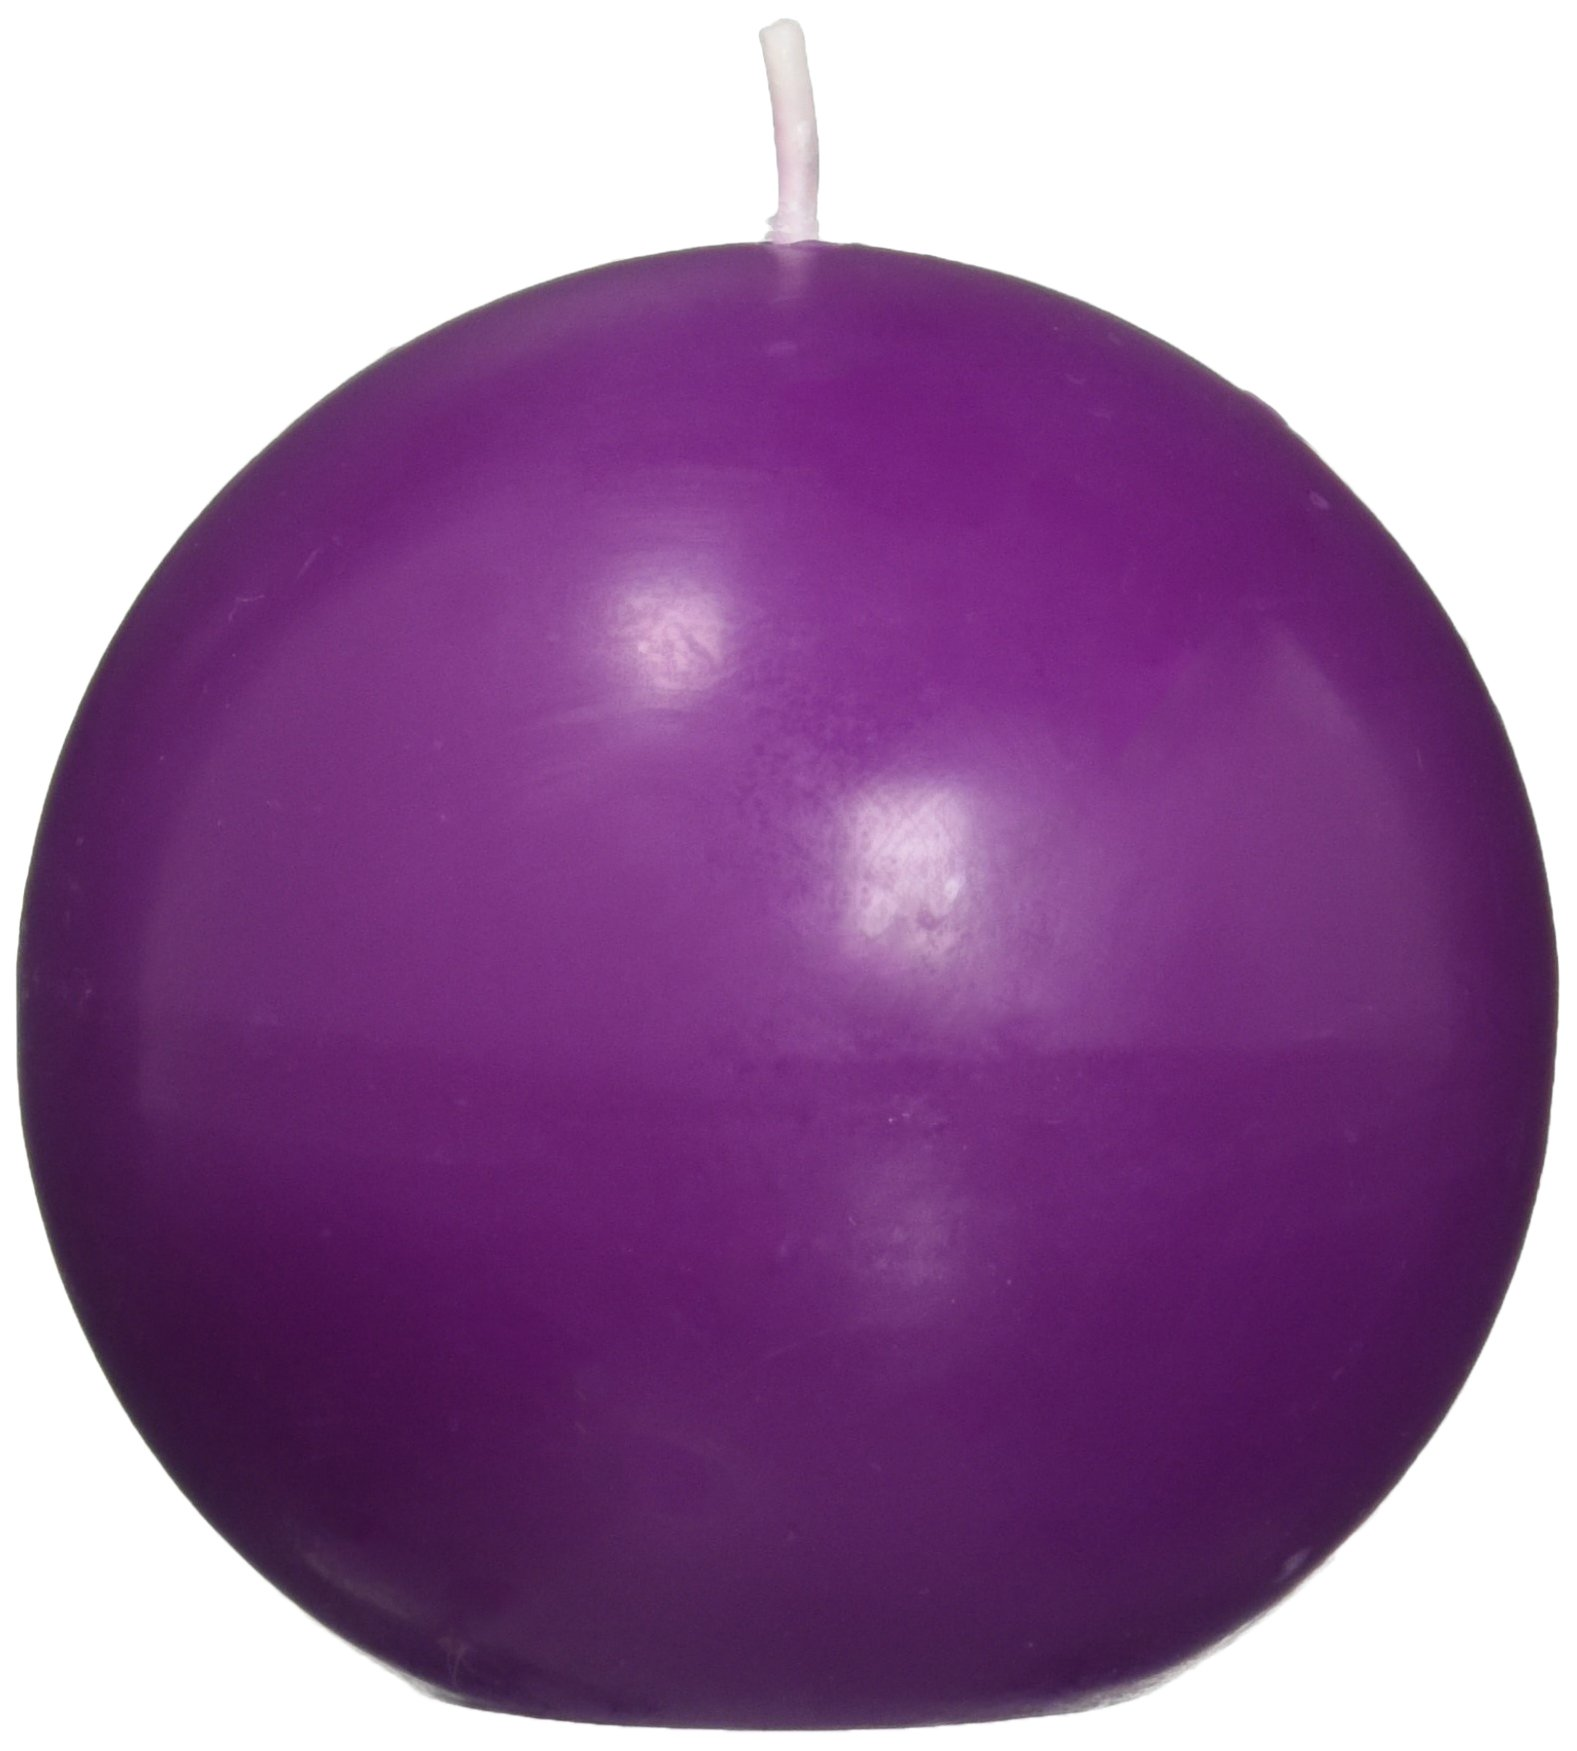 Zest Candle 6-Piece Ball Candles, 3-Inch, Purple by Zest Candle